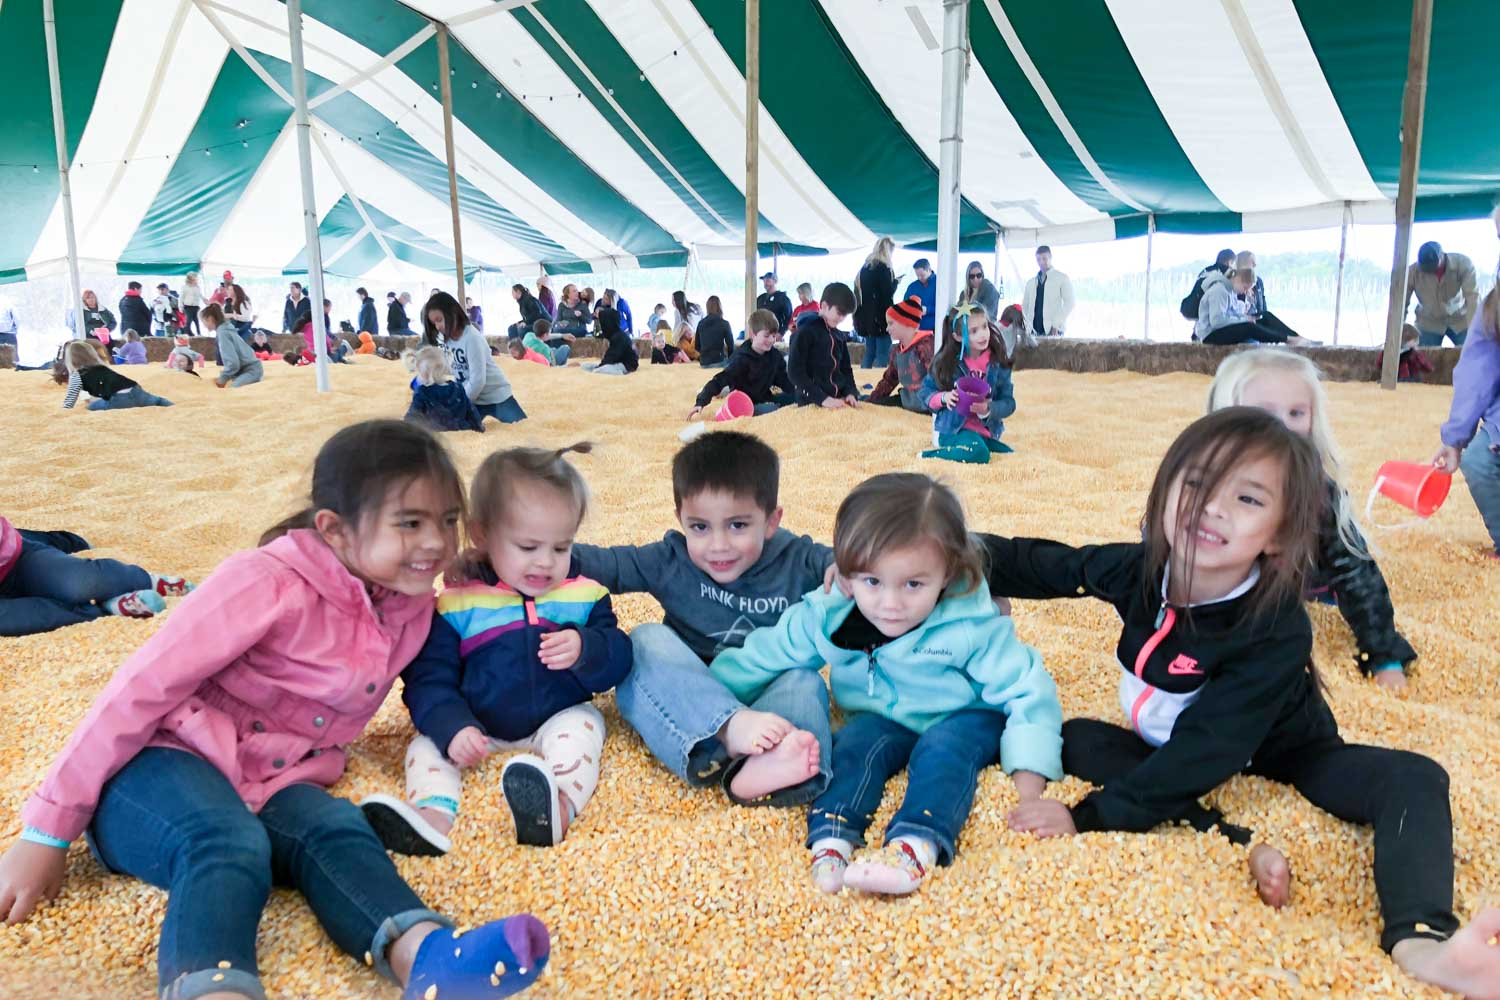 kansas city pumpkin patch - carolyns country cousin largest corn pit